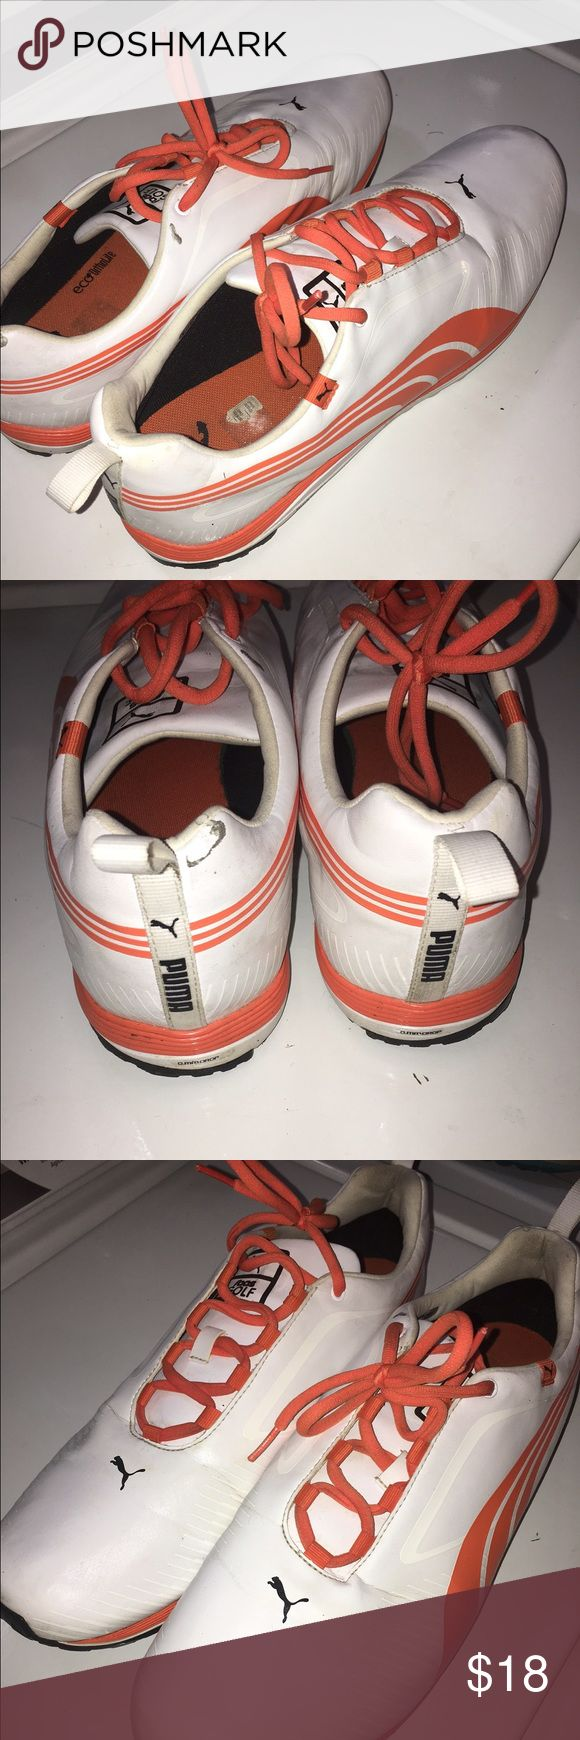 Puma Golf Spikes Men's Size 13 Puma Golf Spikes. Worn for less than 2 months. Maybe 6-7 rounds. Very nice condition with basic wear from a golf course. Plenty of life left in them. Feel free to make an offer. Puma Shoes Athletic Shoes